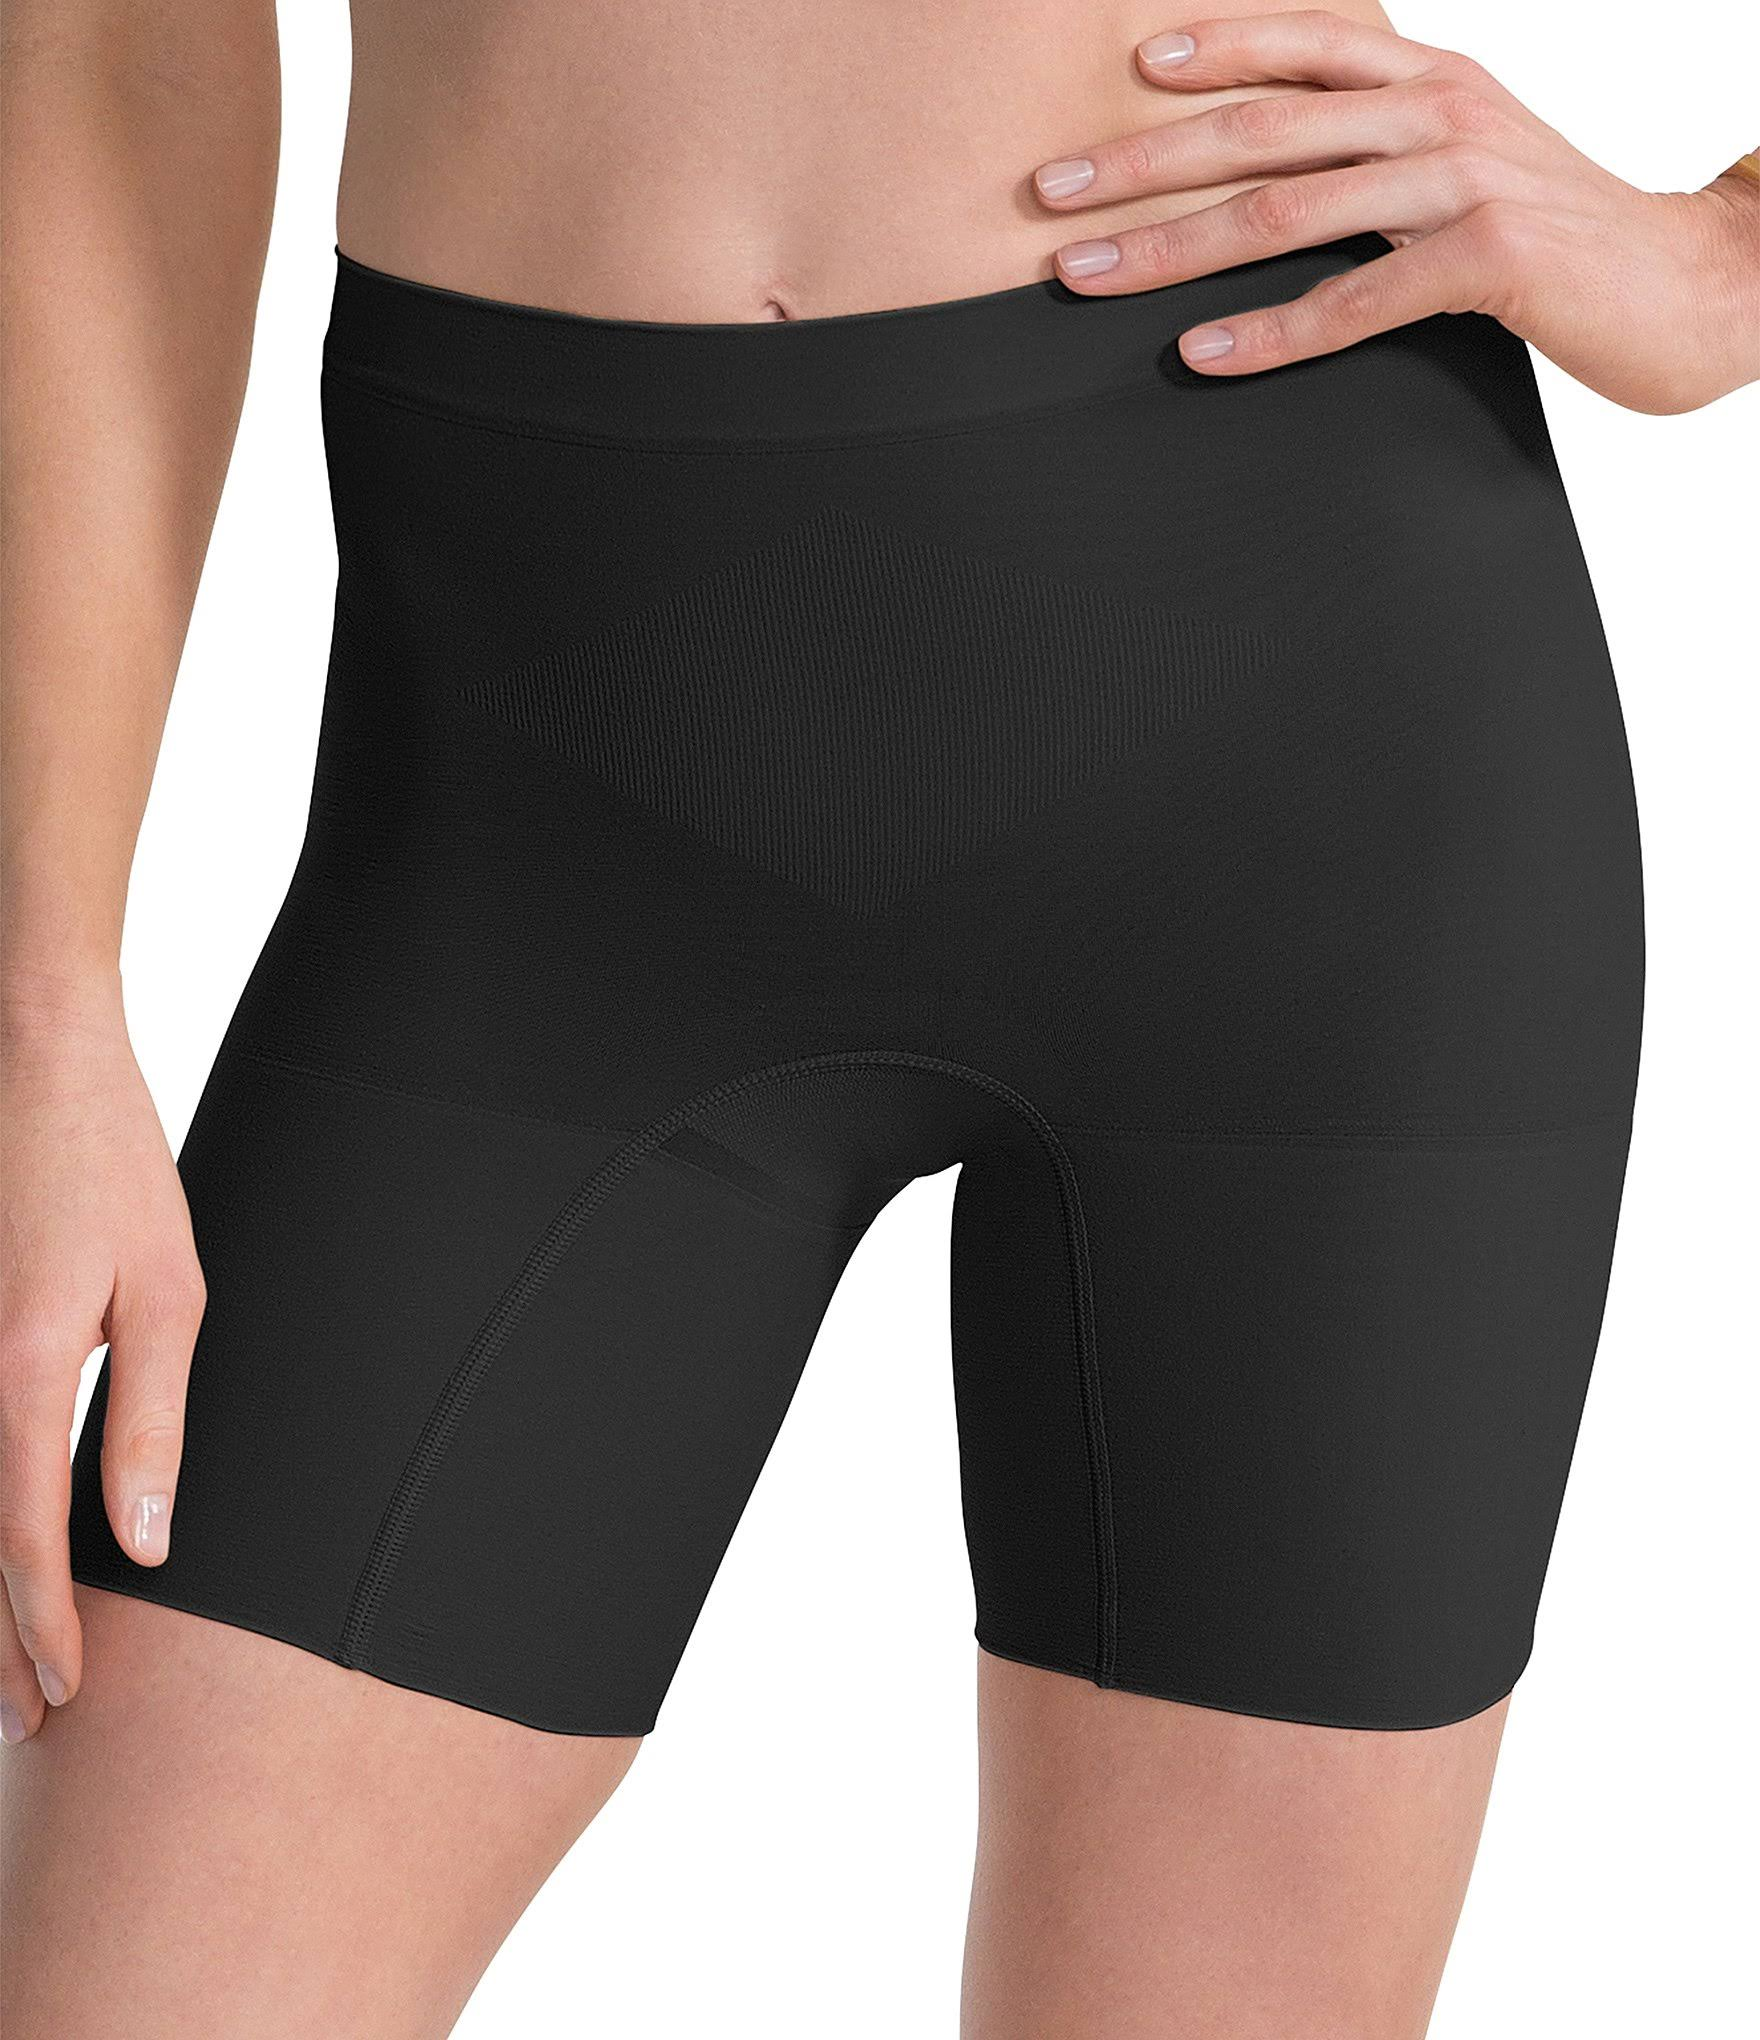 Spanx Womens Power Shorts - Black, 1X Plus, Medium